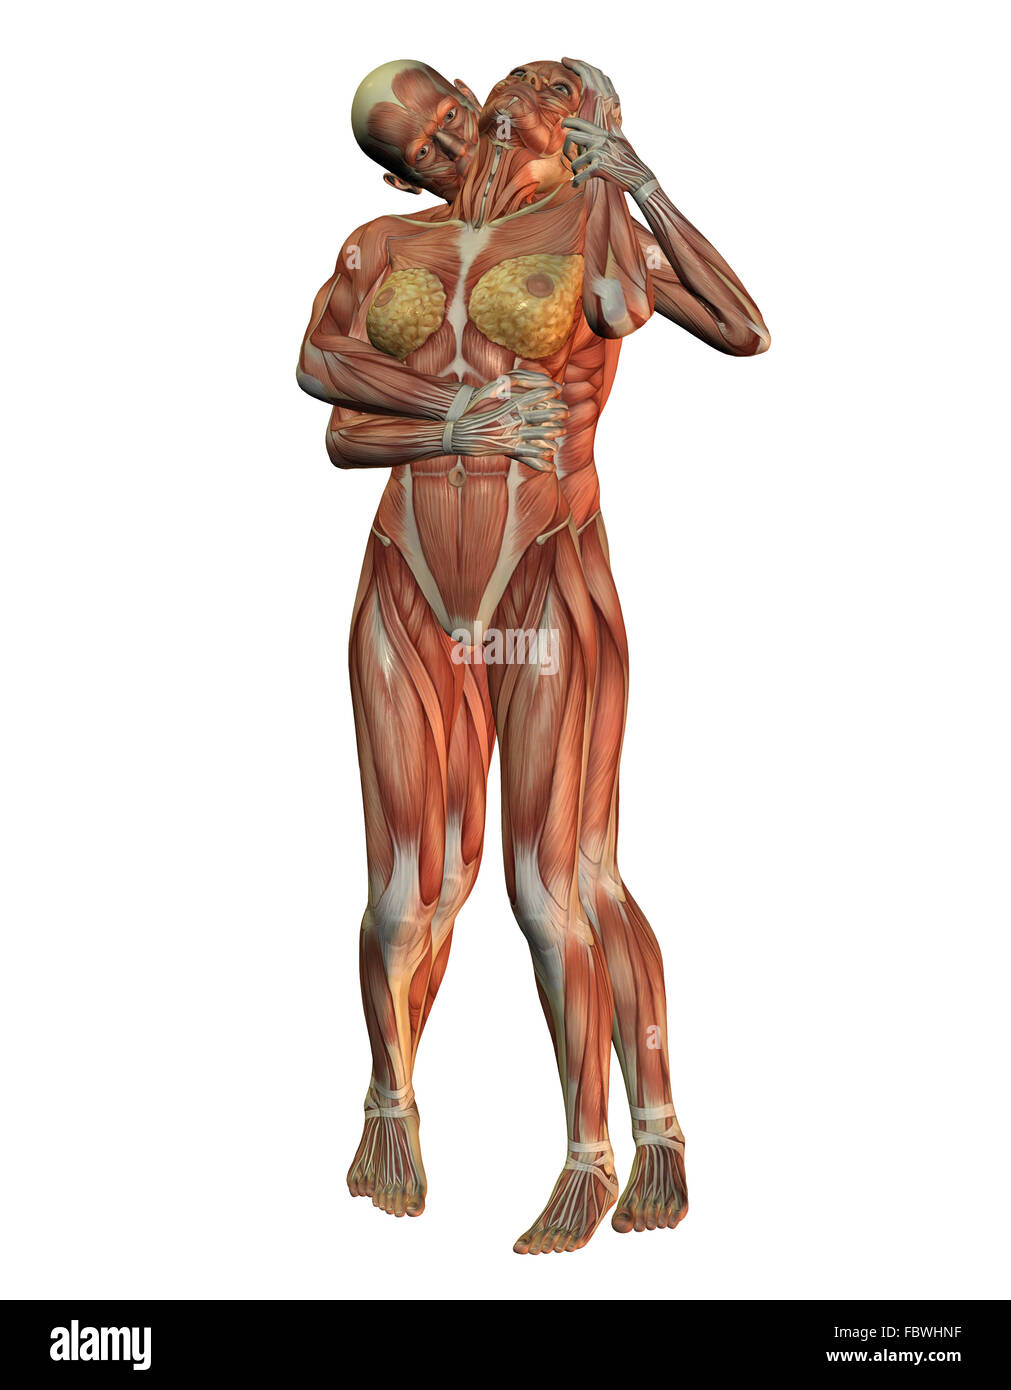 Anatomy and muscle structure Stock Photo: 93375787 - Alamy